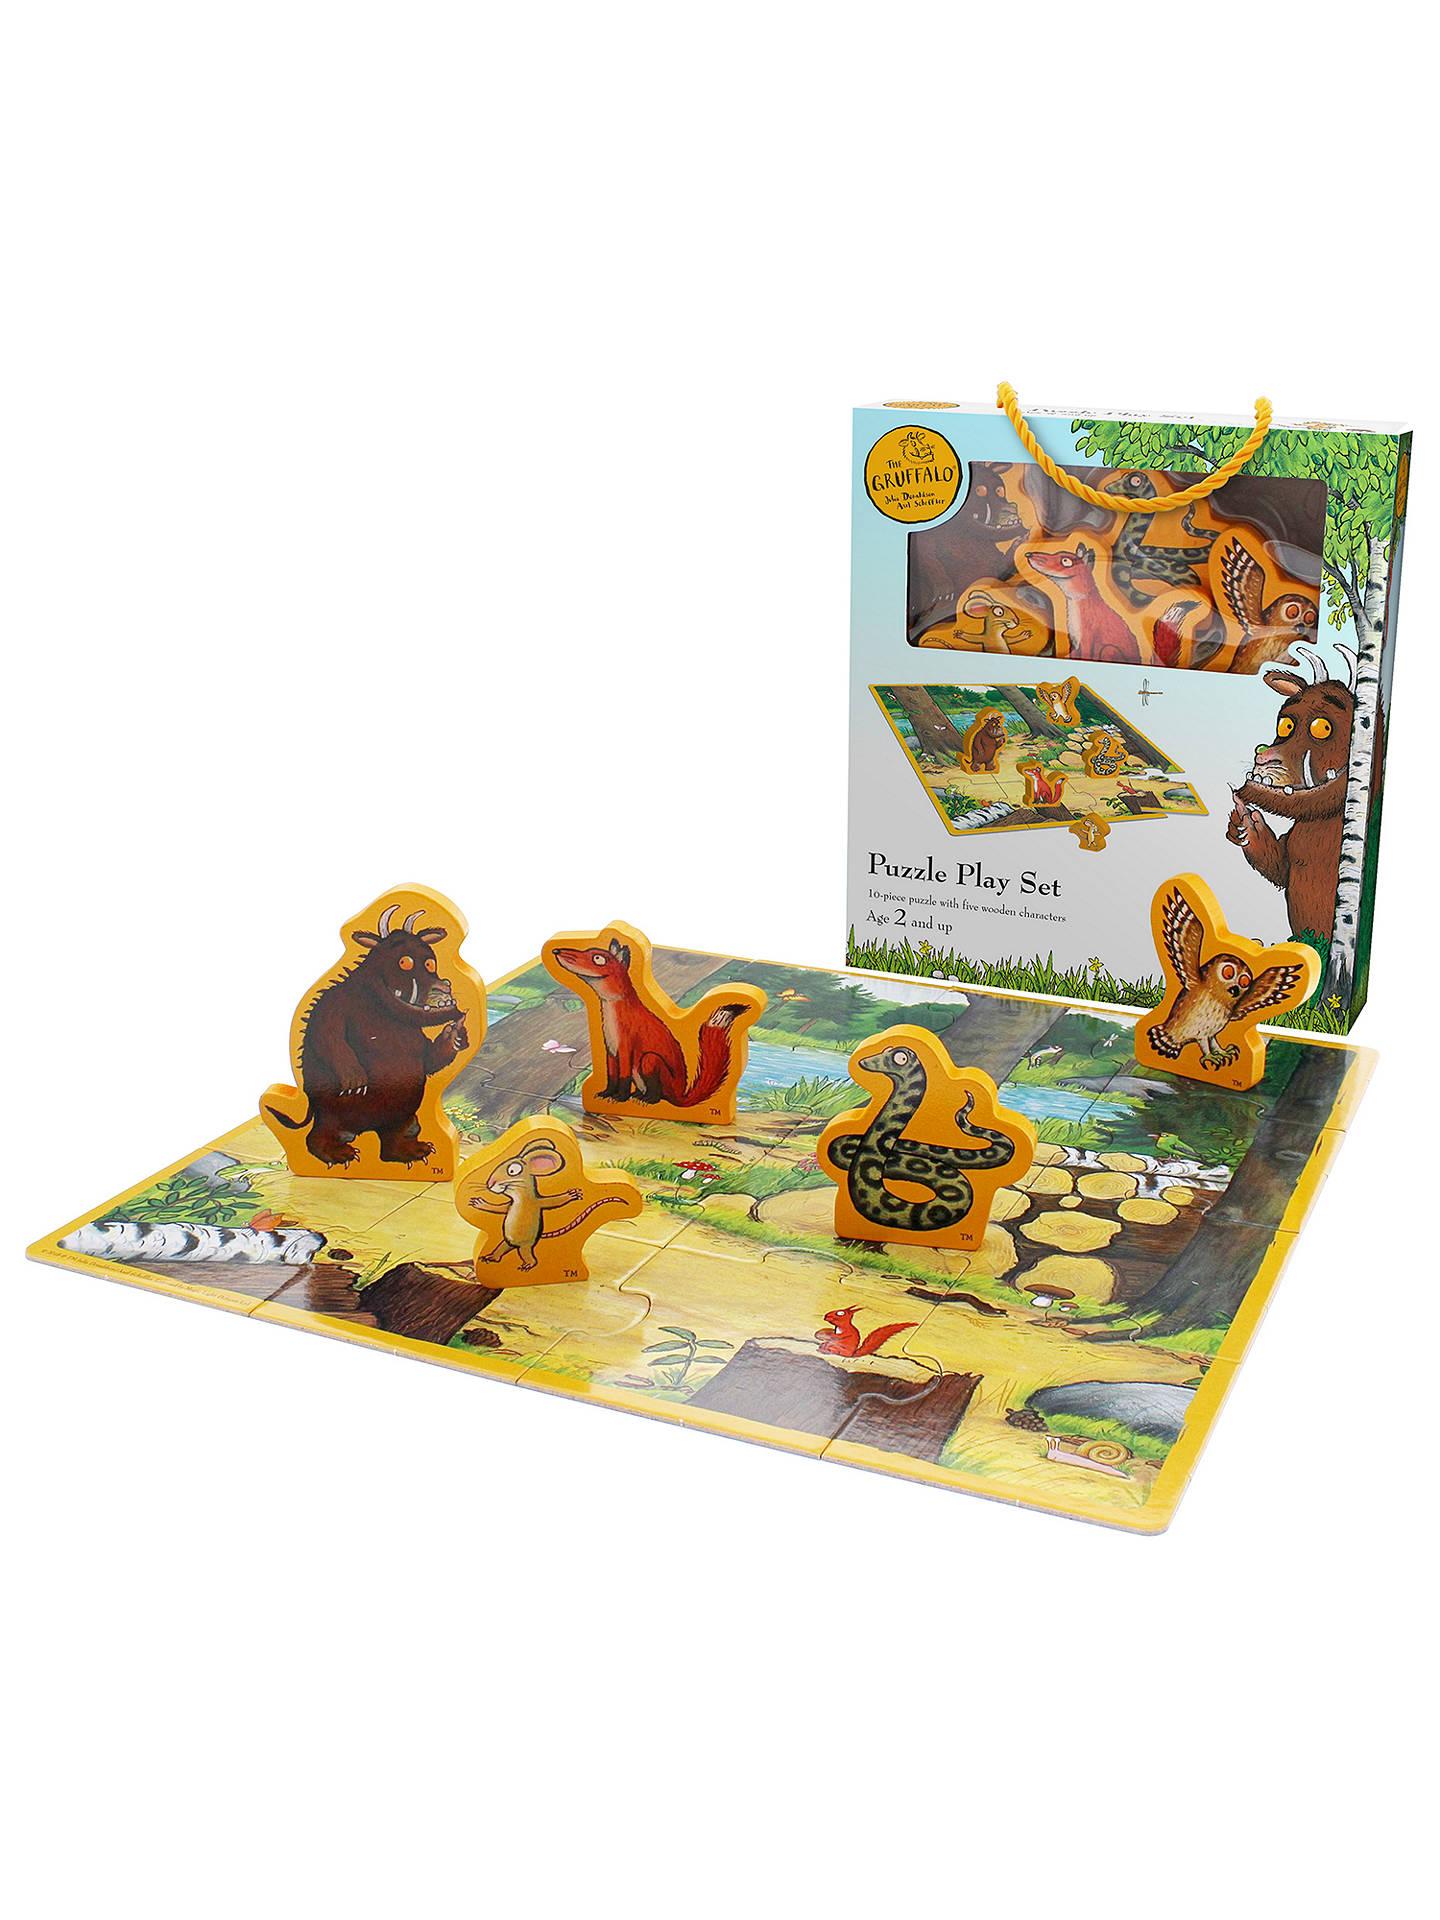 BuyThe Gruffalo Jigsaw Puzzle Play Set Online at johnlewis.com